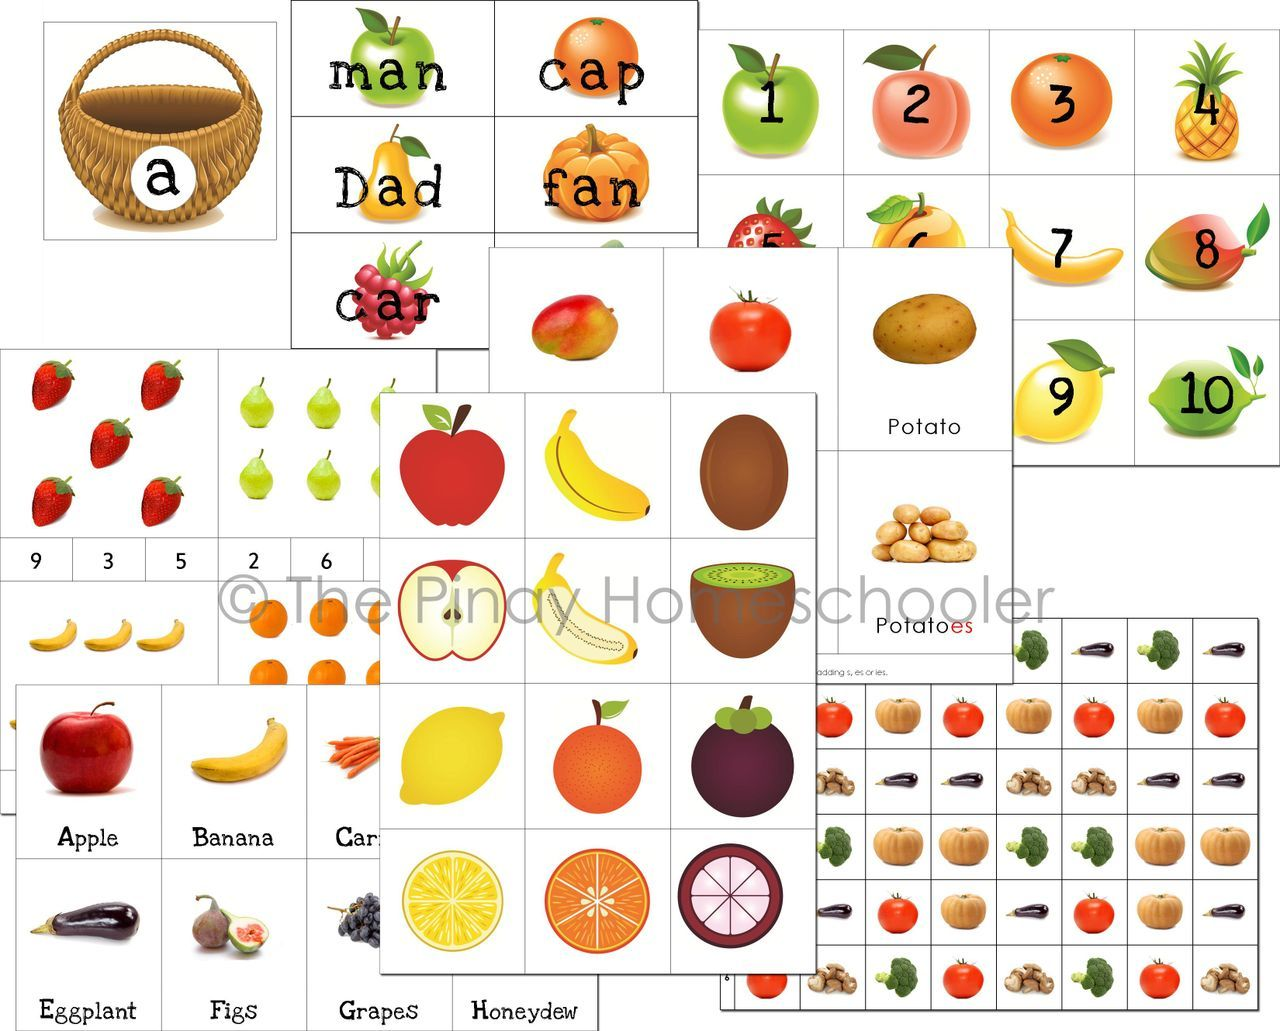 Language Learning Materials For Toddlers With Free